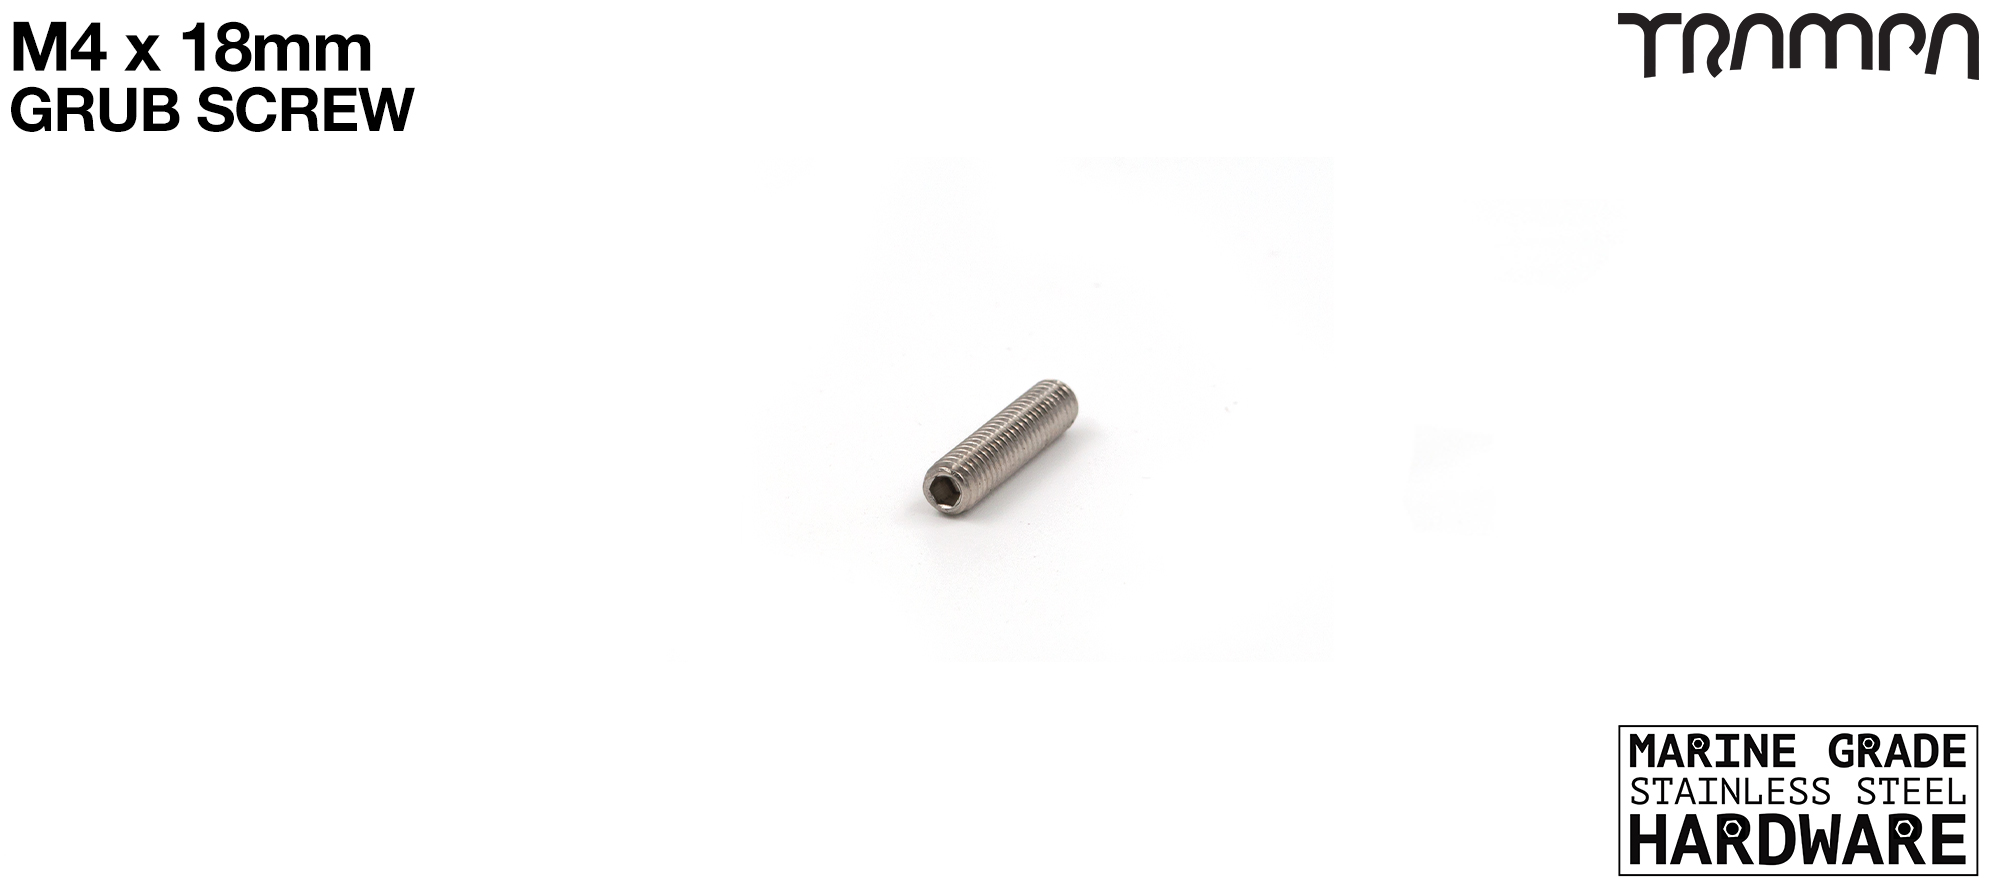 M4 x 18mm Grub Screw Marine Grade Stainless Steel - Connects to 80mm HEX Spacer #32